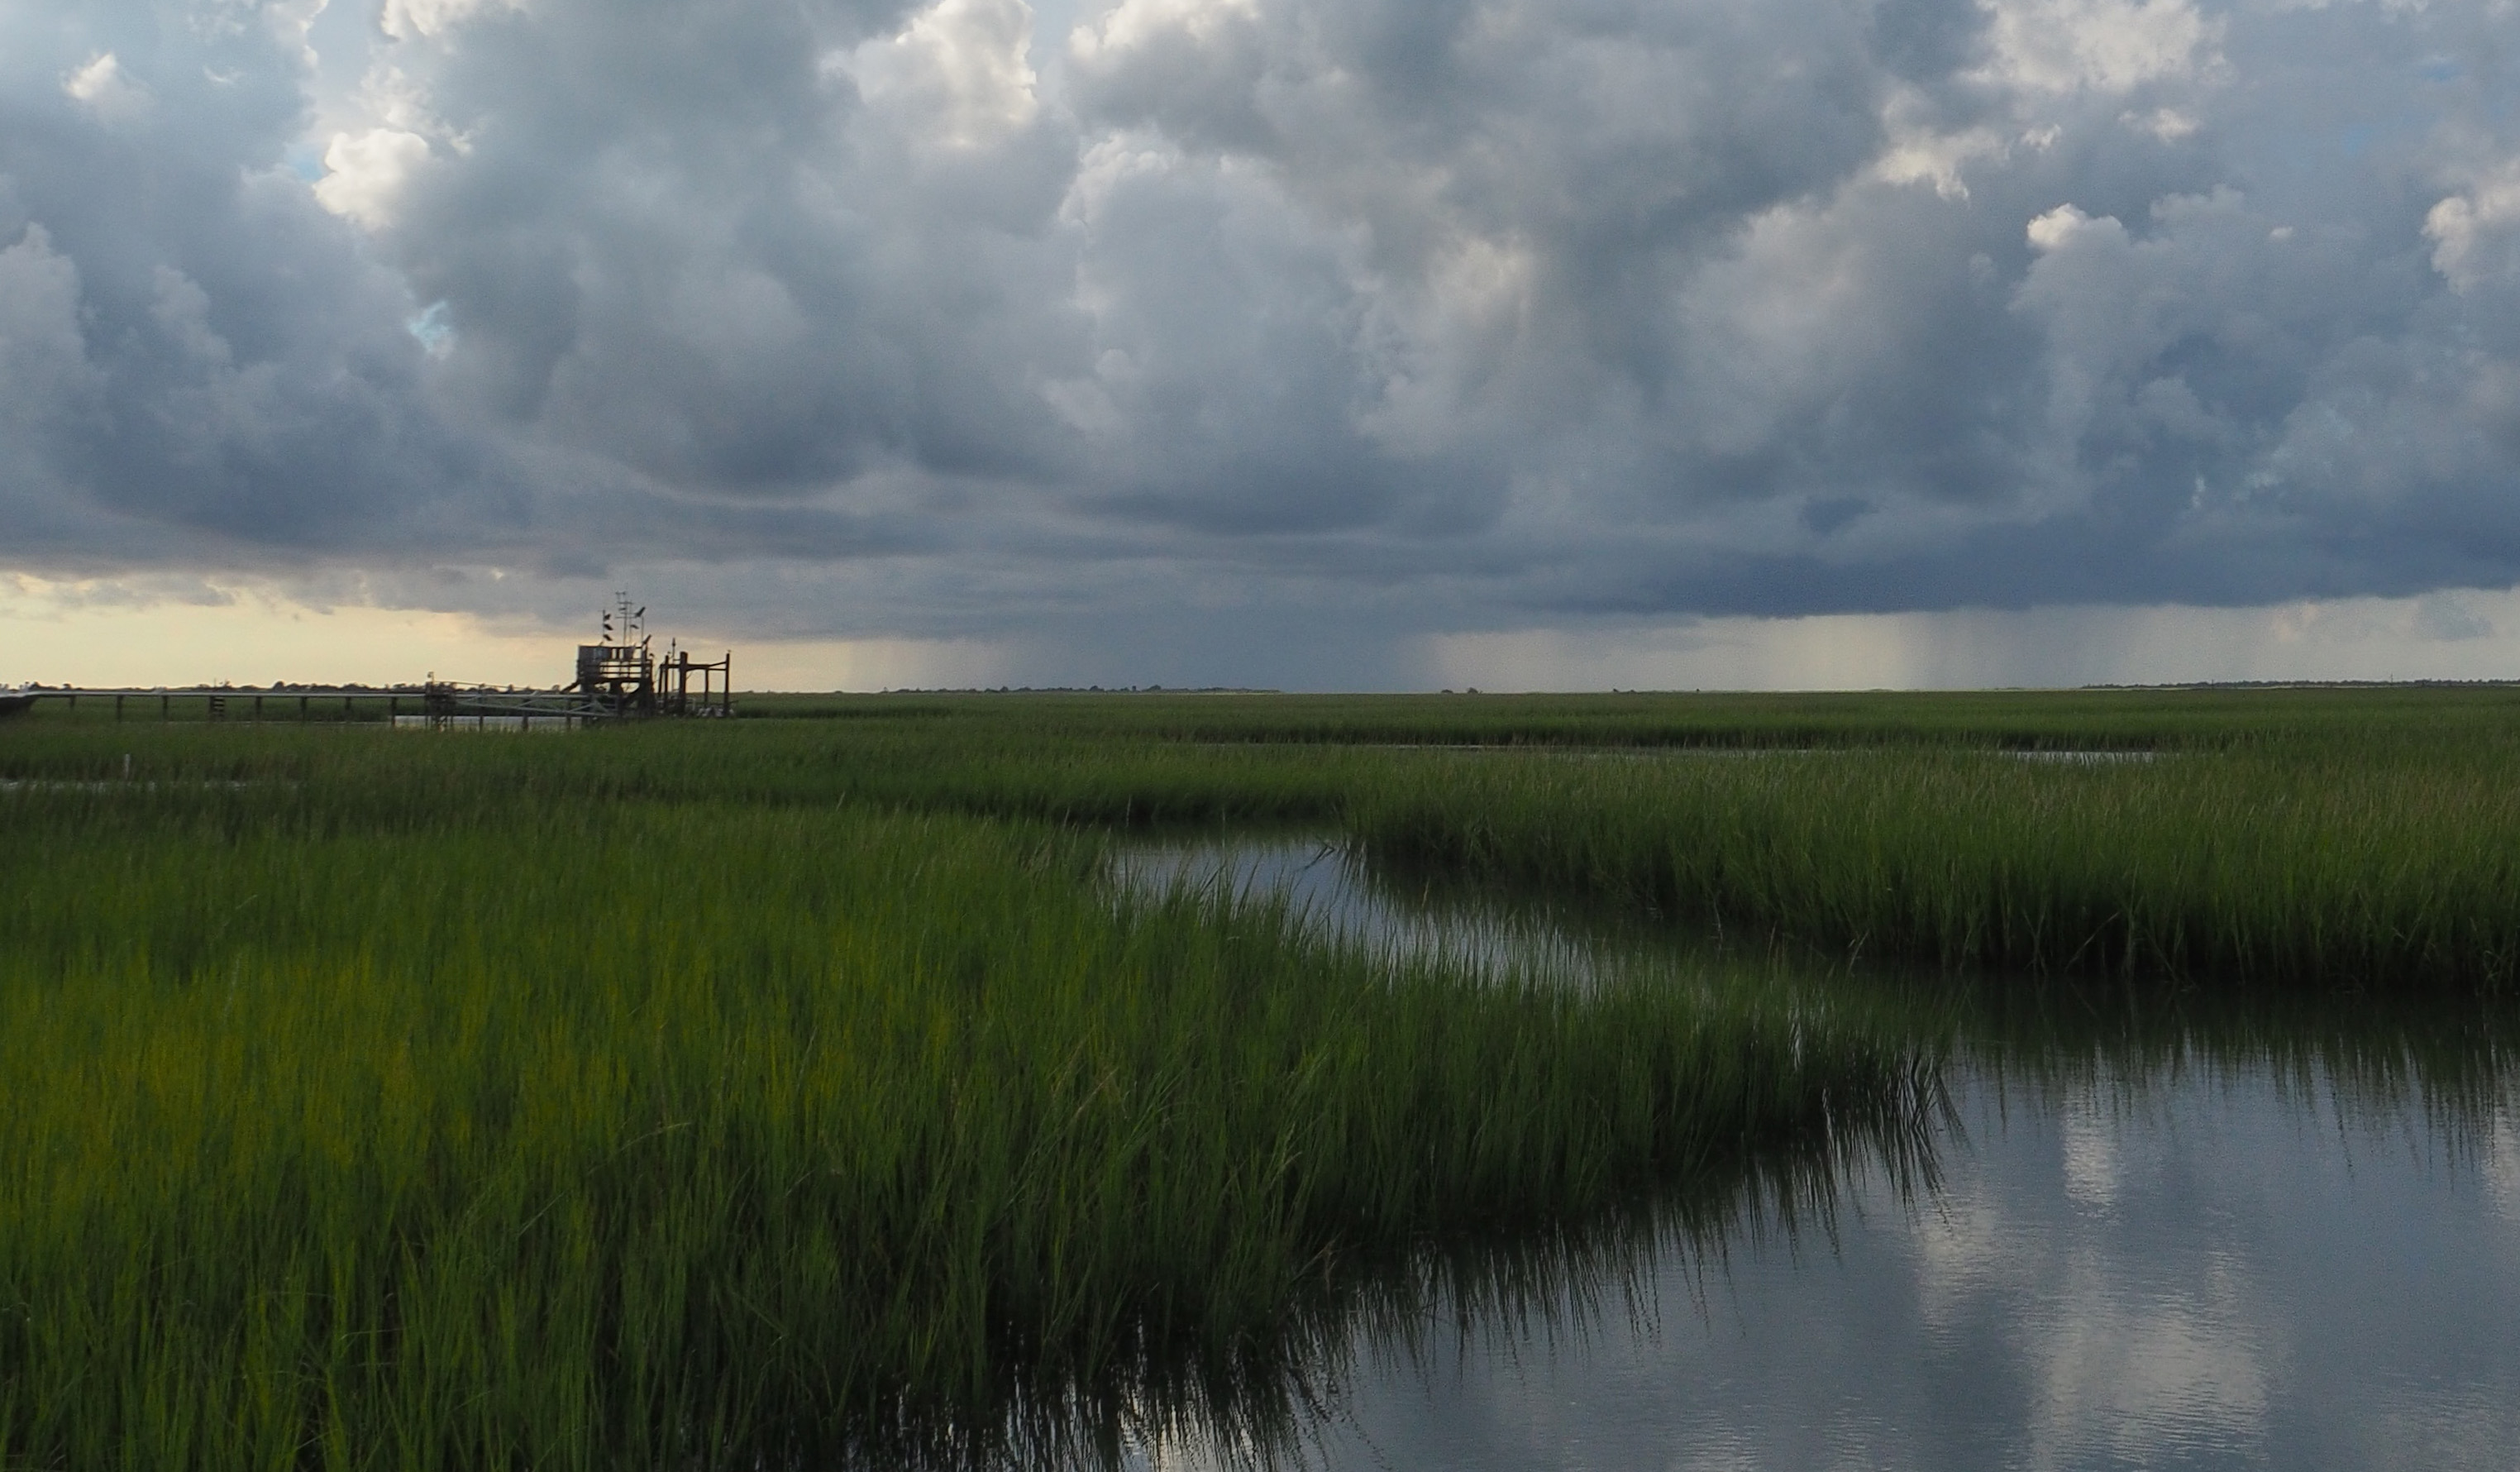 Stormy day at Oyster Landing